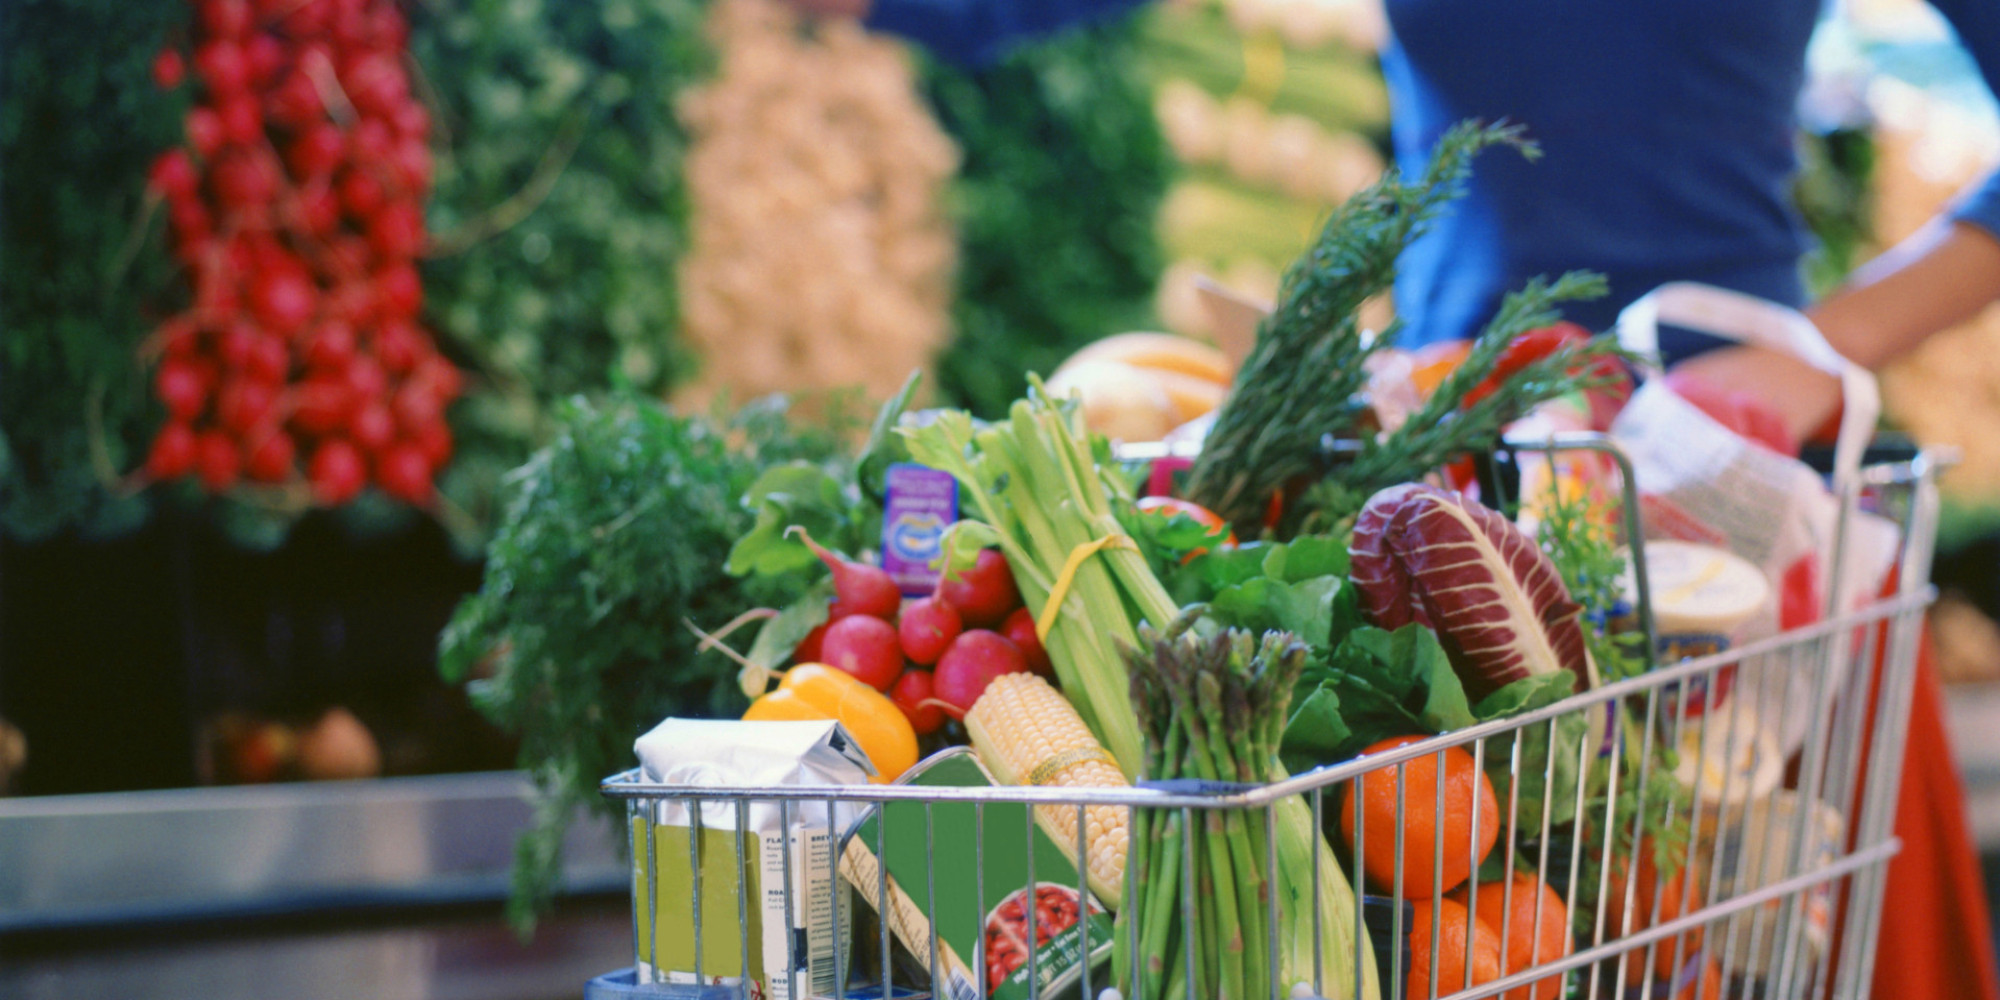 4 Signs You Shouldn't Buy Those Groceries | HuffPost